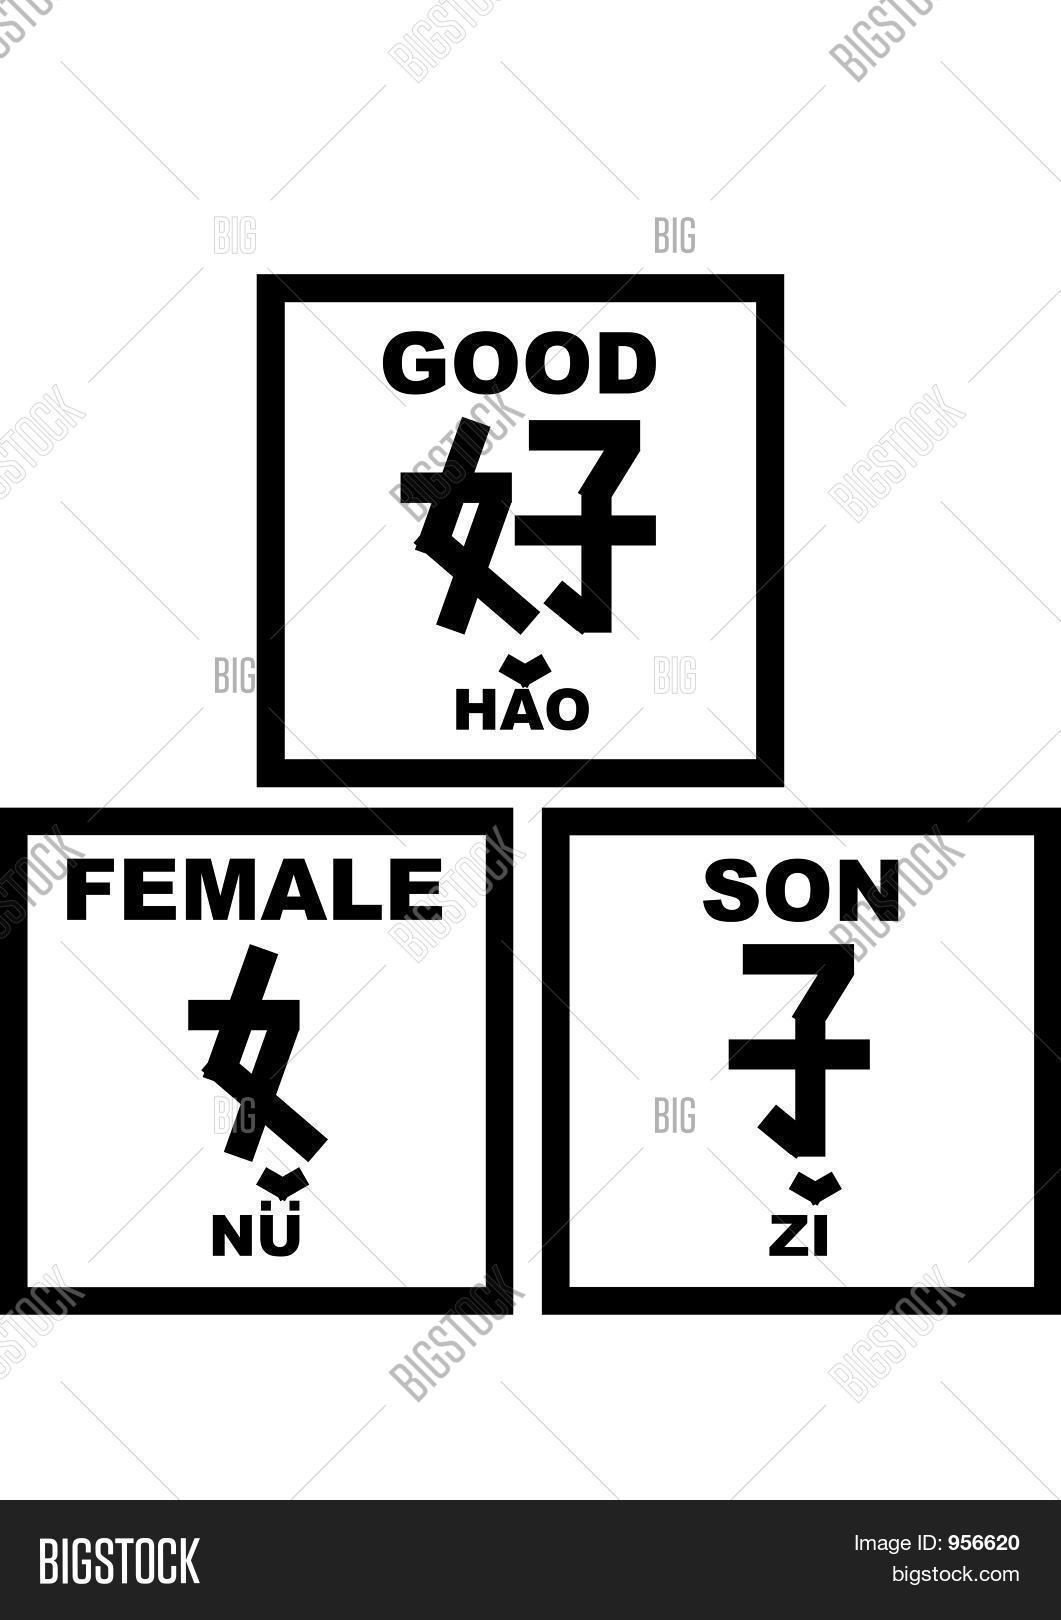 Chinese Words Good Image Photo Free Trial Bigstock